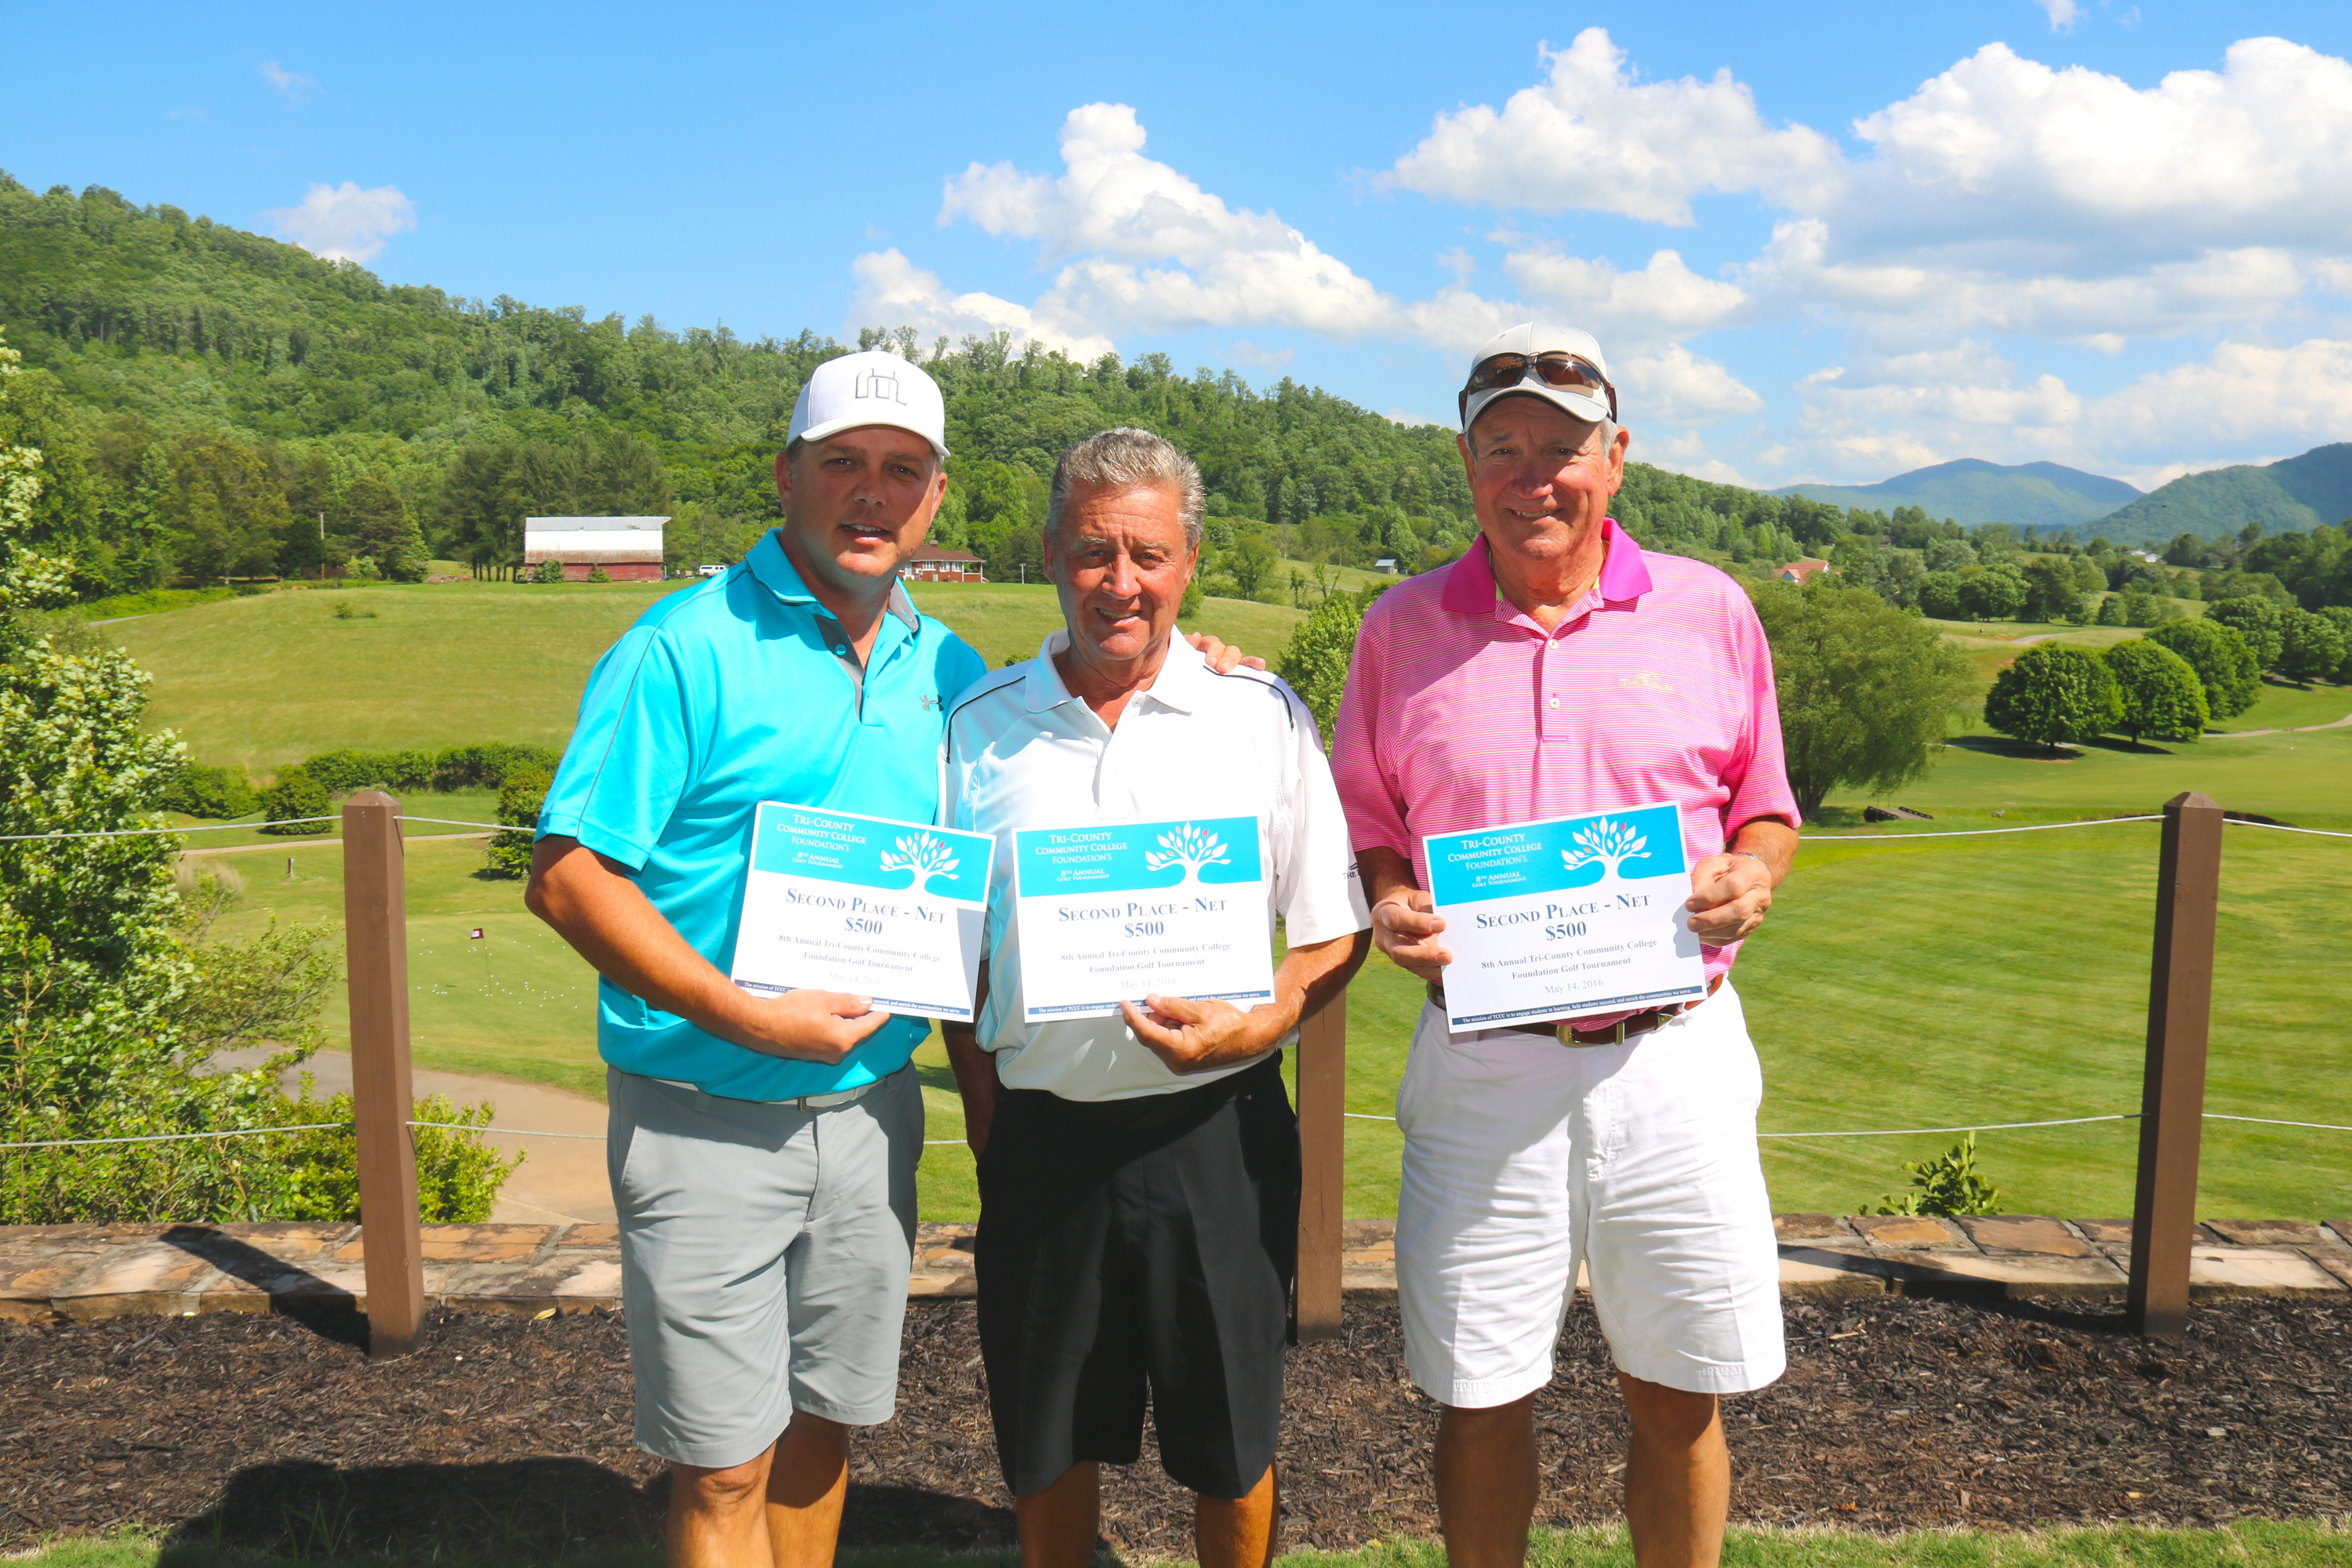 Larry Owens, Jason Brooks, and Tom Erwin, winners of the $500 second place net prize, pose with their winnings at the TCCC Foundation's 8th Annual Golf Tournament at The Ridges Country Club in Hayesville on May 14.